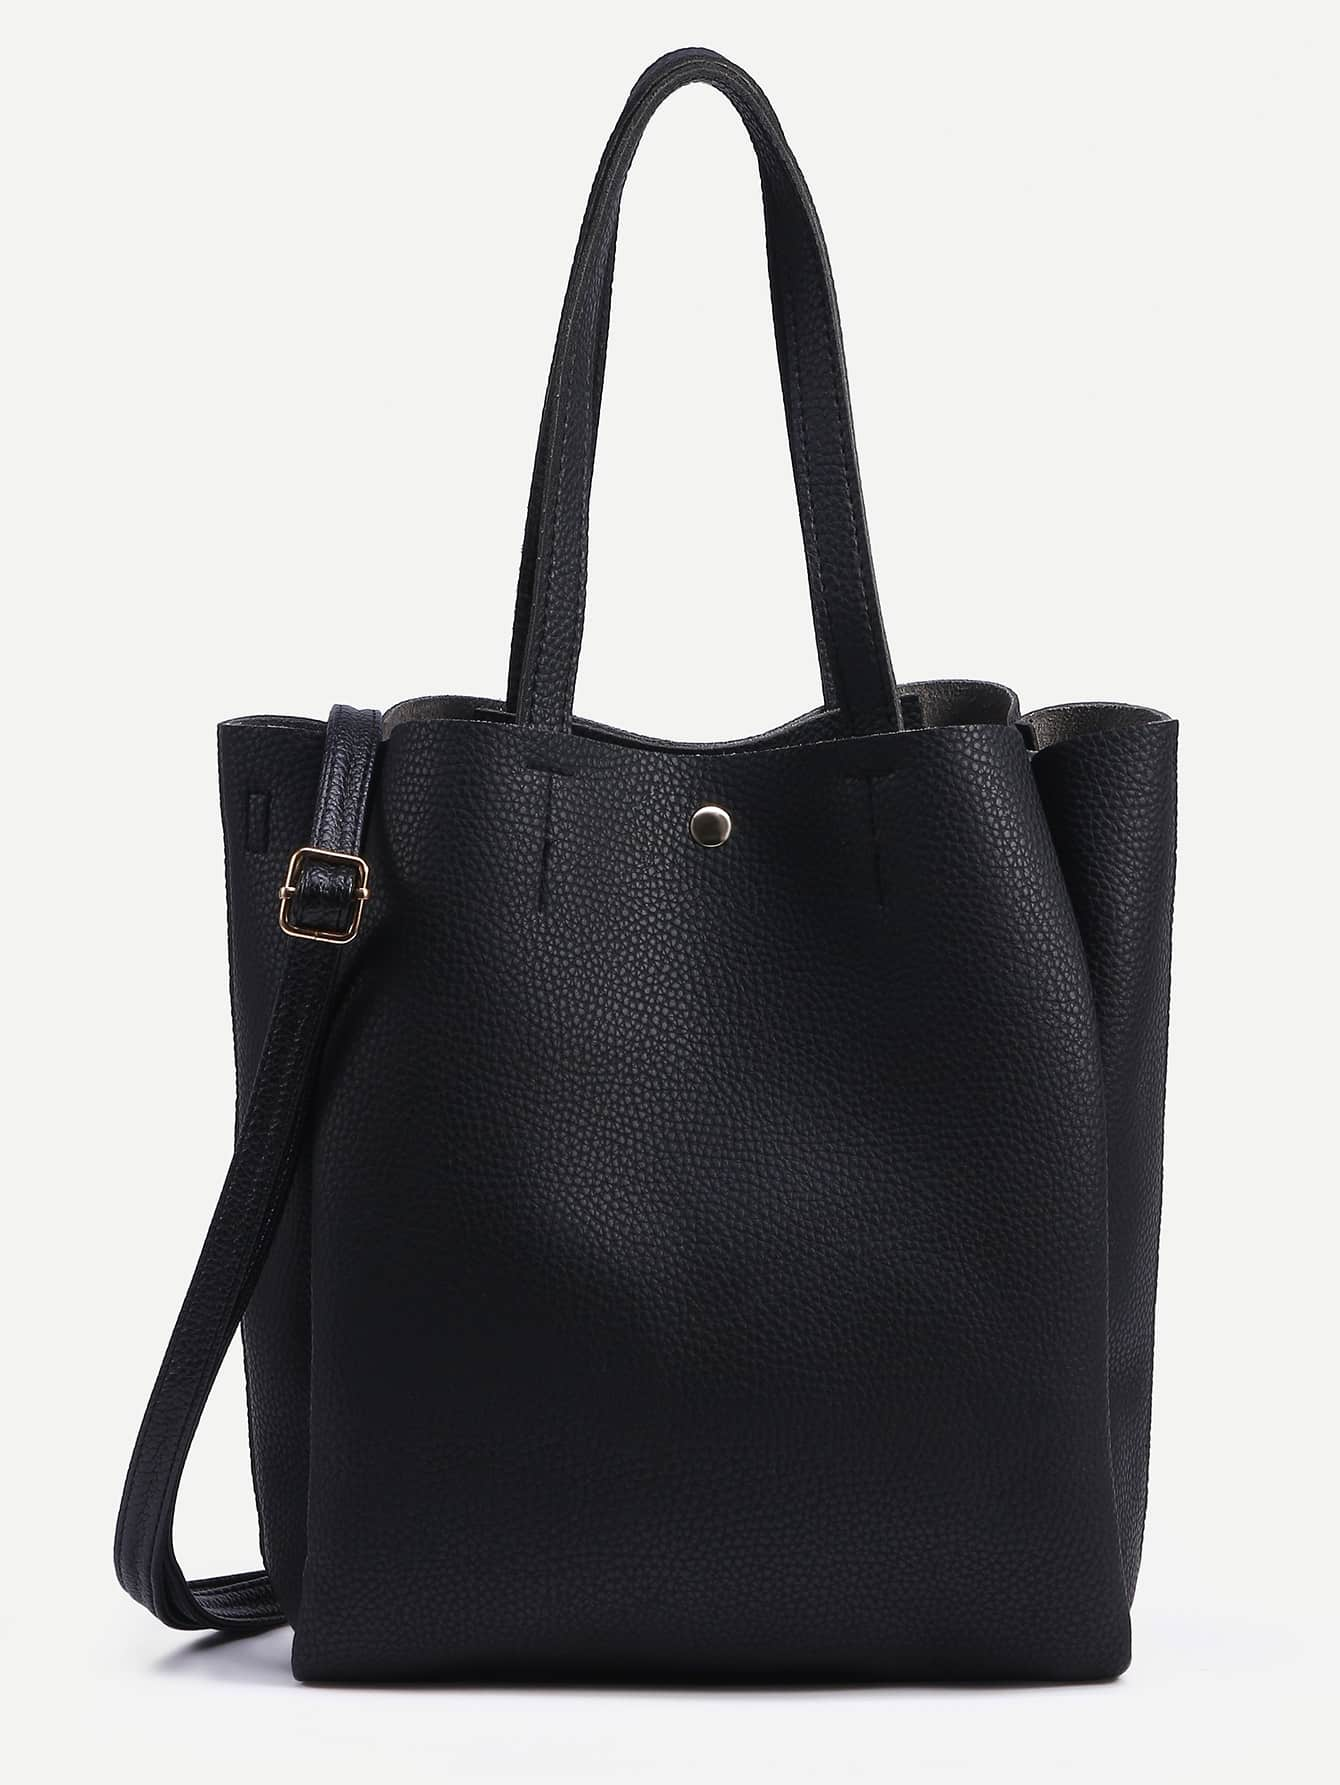 Black Pebbled Layered Tote Bag With Strap -SheIn(Sheinside)